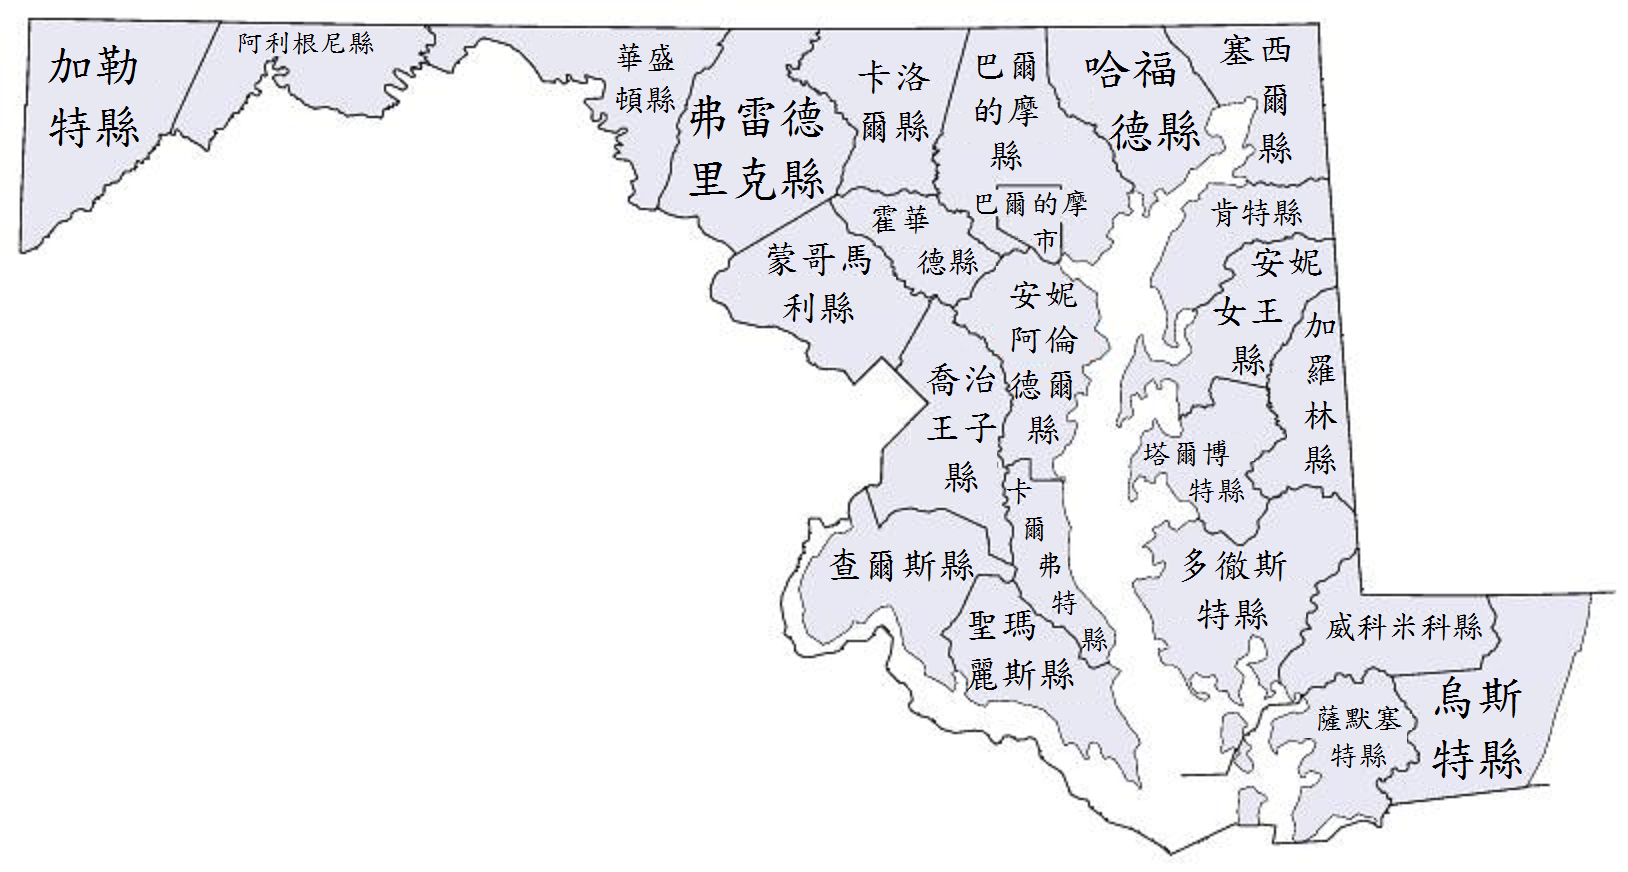 File:Map of maryland counties hant-hk.png - Wikimedia Commons